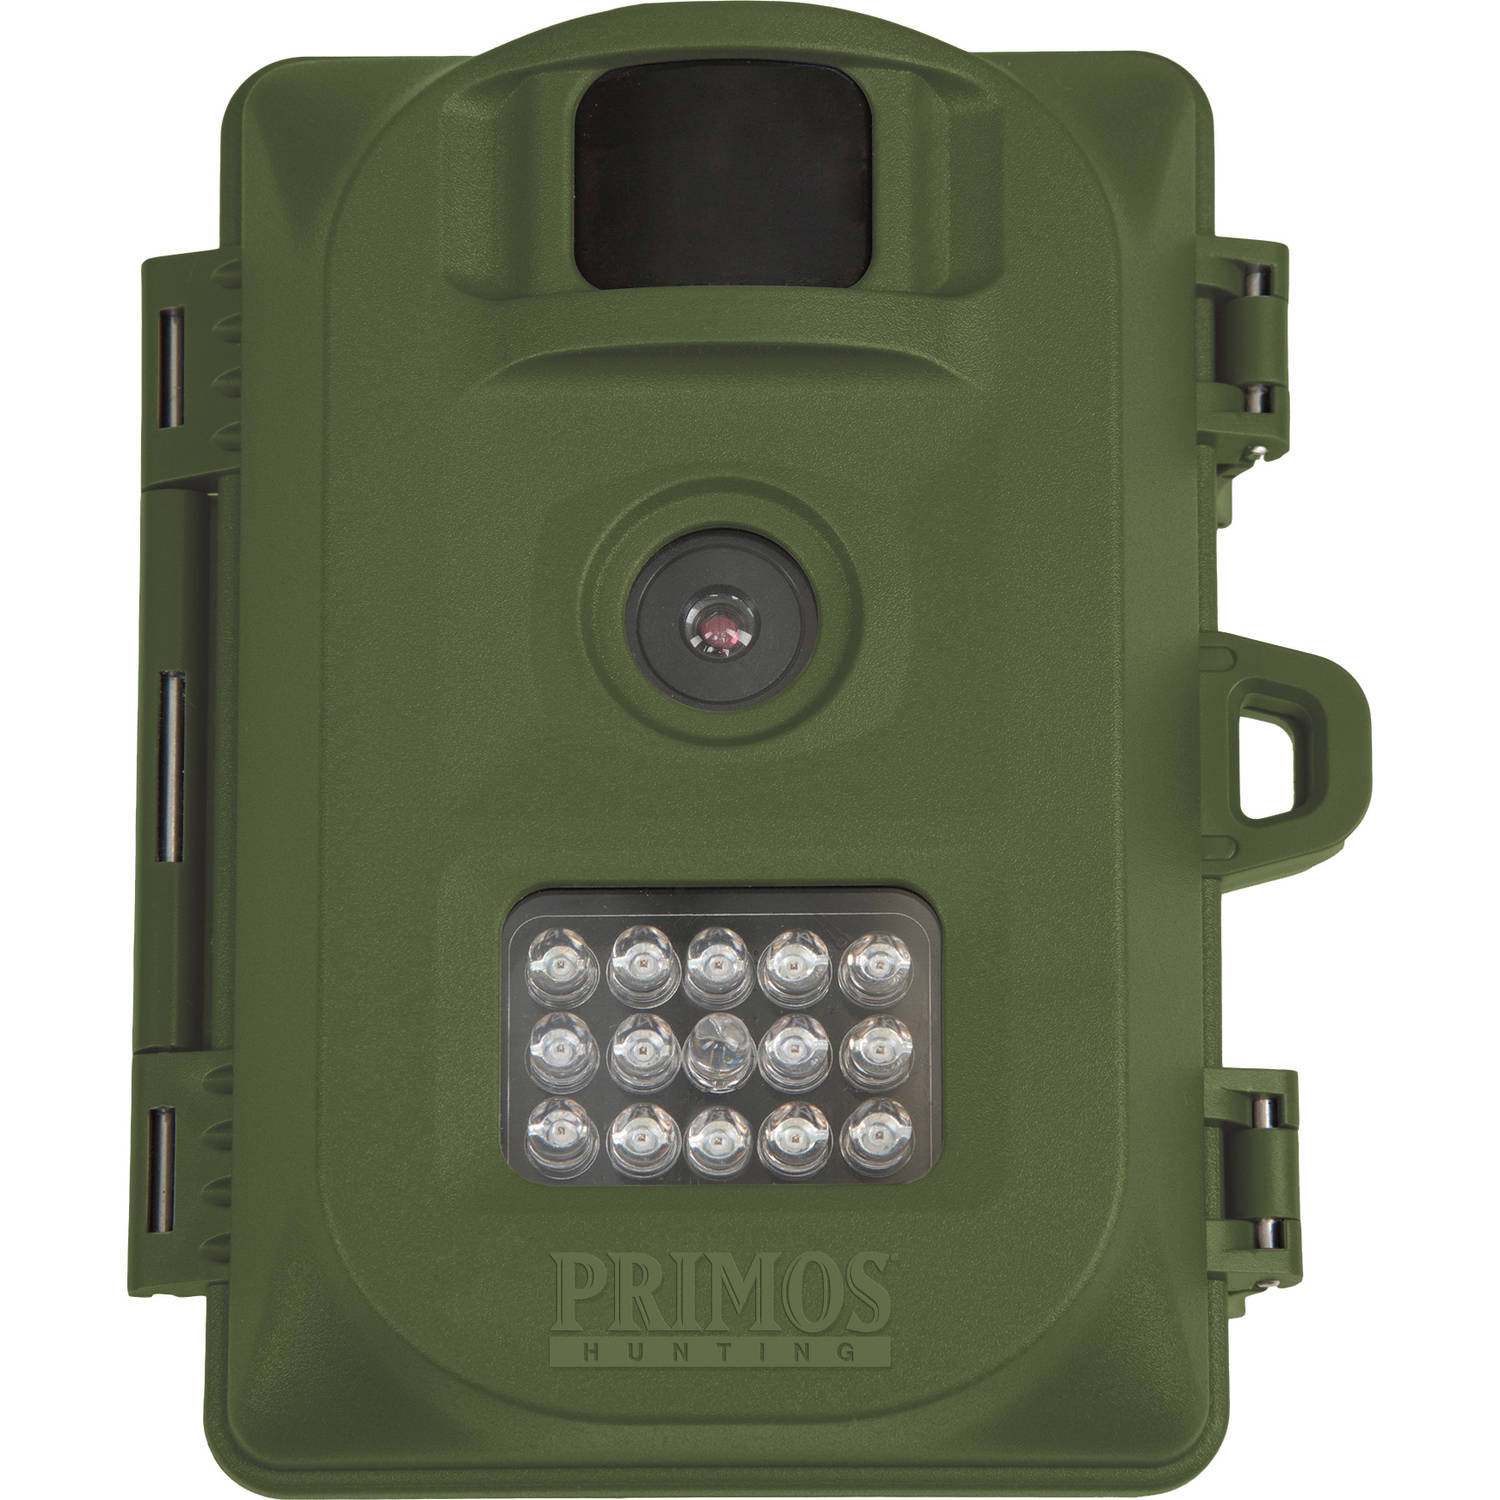 Primos Bullet Proof 12MP Low Glow Trail Camera